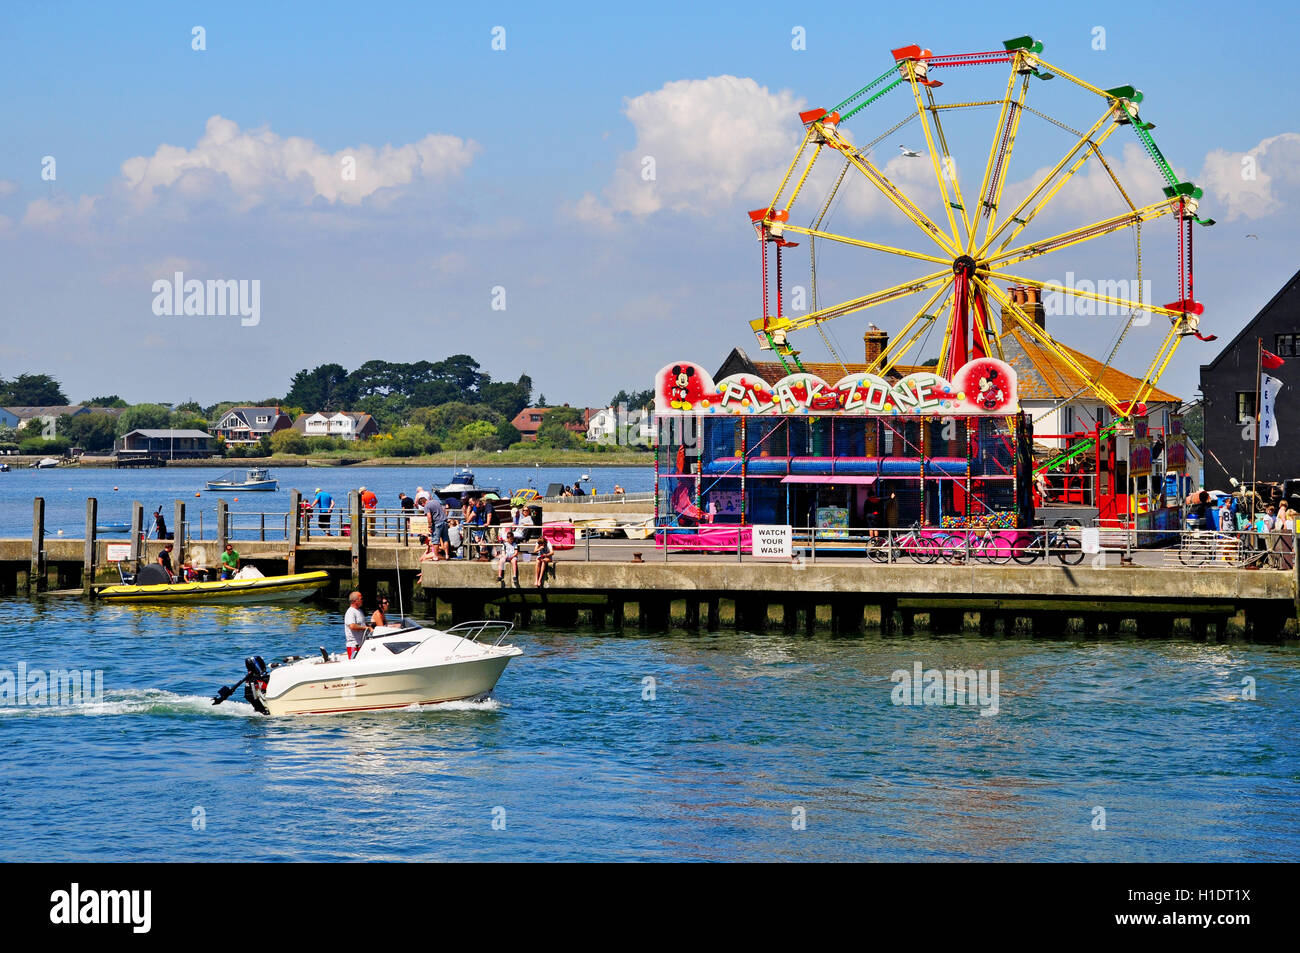 motor boat cruising past  mudeford quay in front of ferris wheel and kiddies play area. - Stock Image